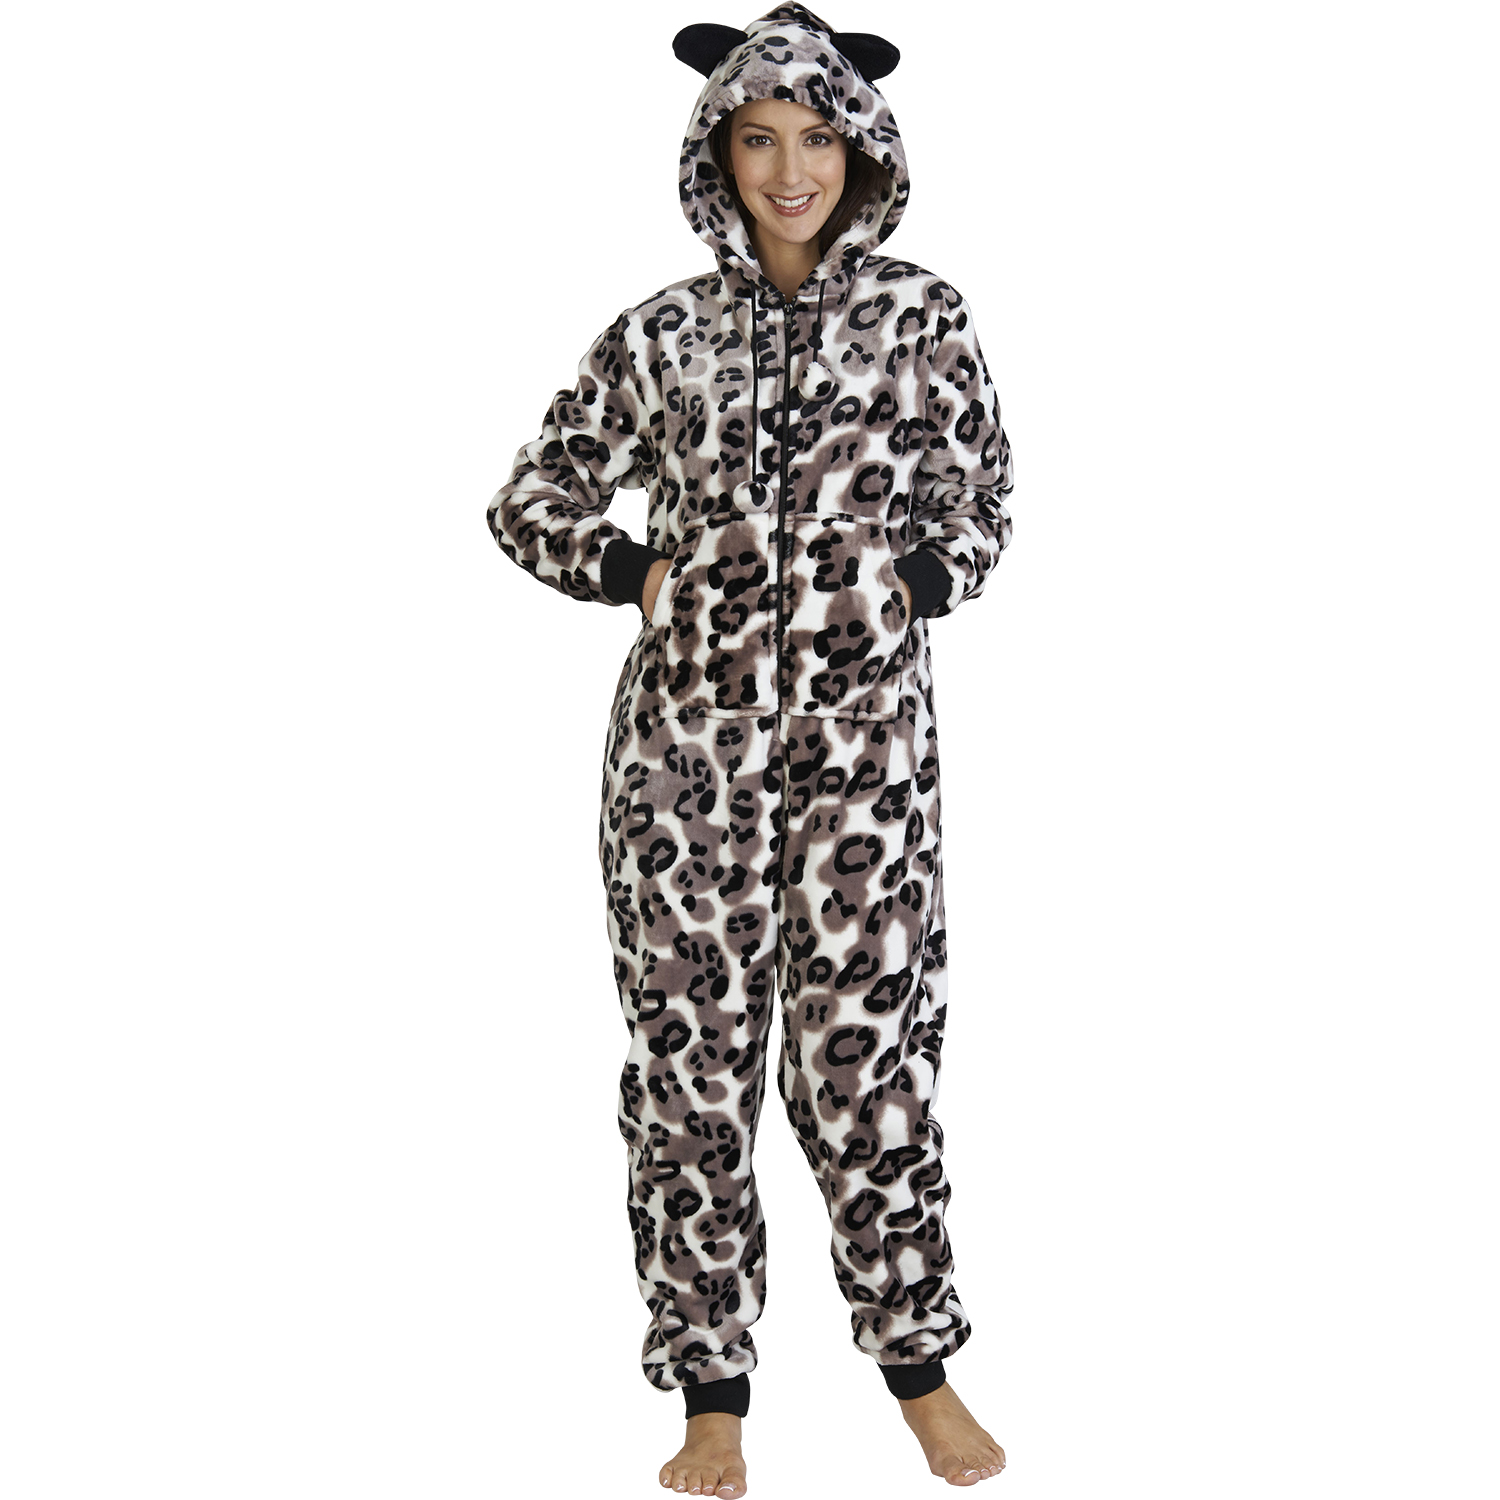 Find great deals on eBay for animal print onesie. Shop with confidence.